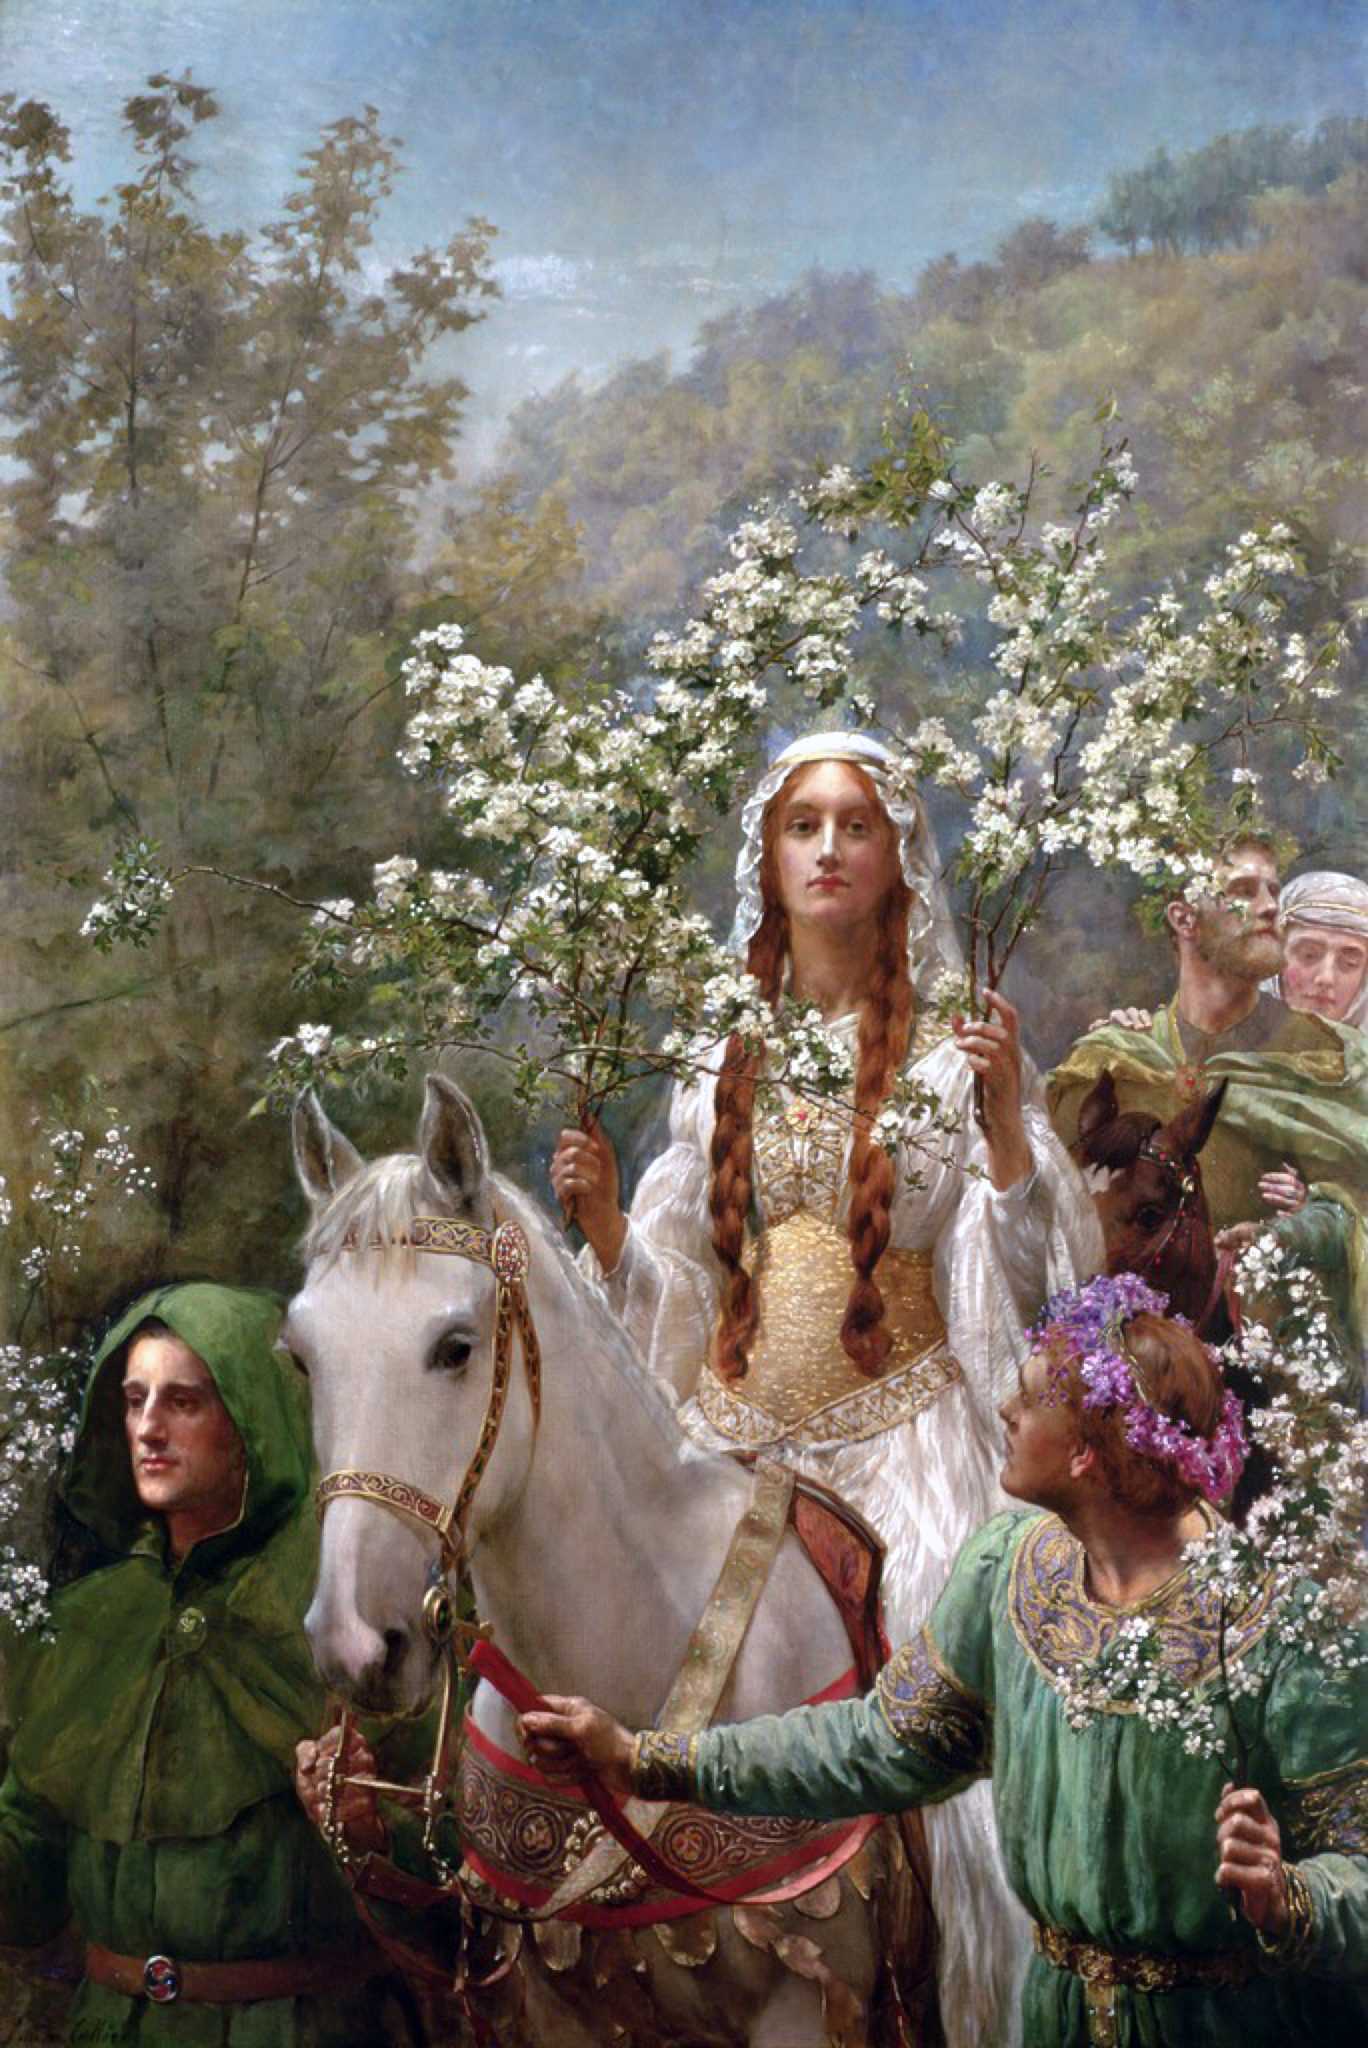 http://upload.wikimedia.org/wikipedia/commons/6/6f/John_Collier_Queen_Guinevre%27s_Maying.jpg